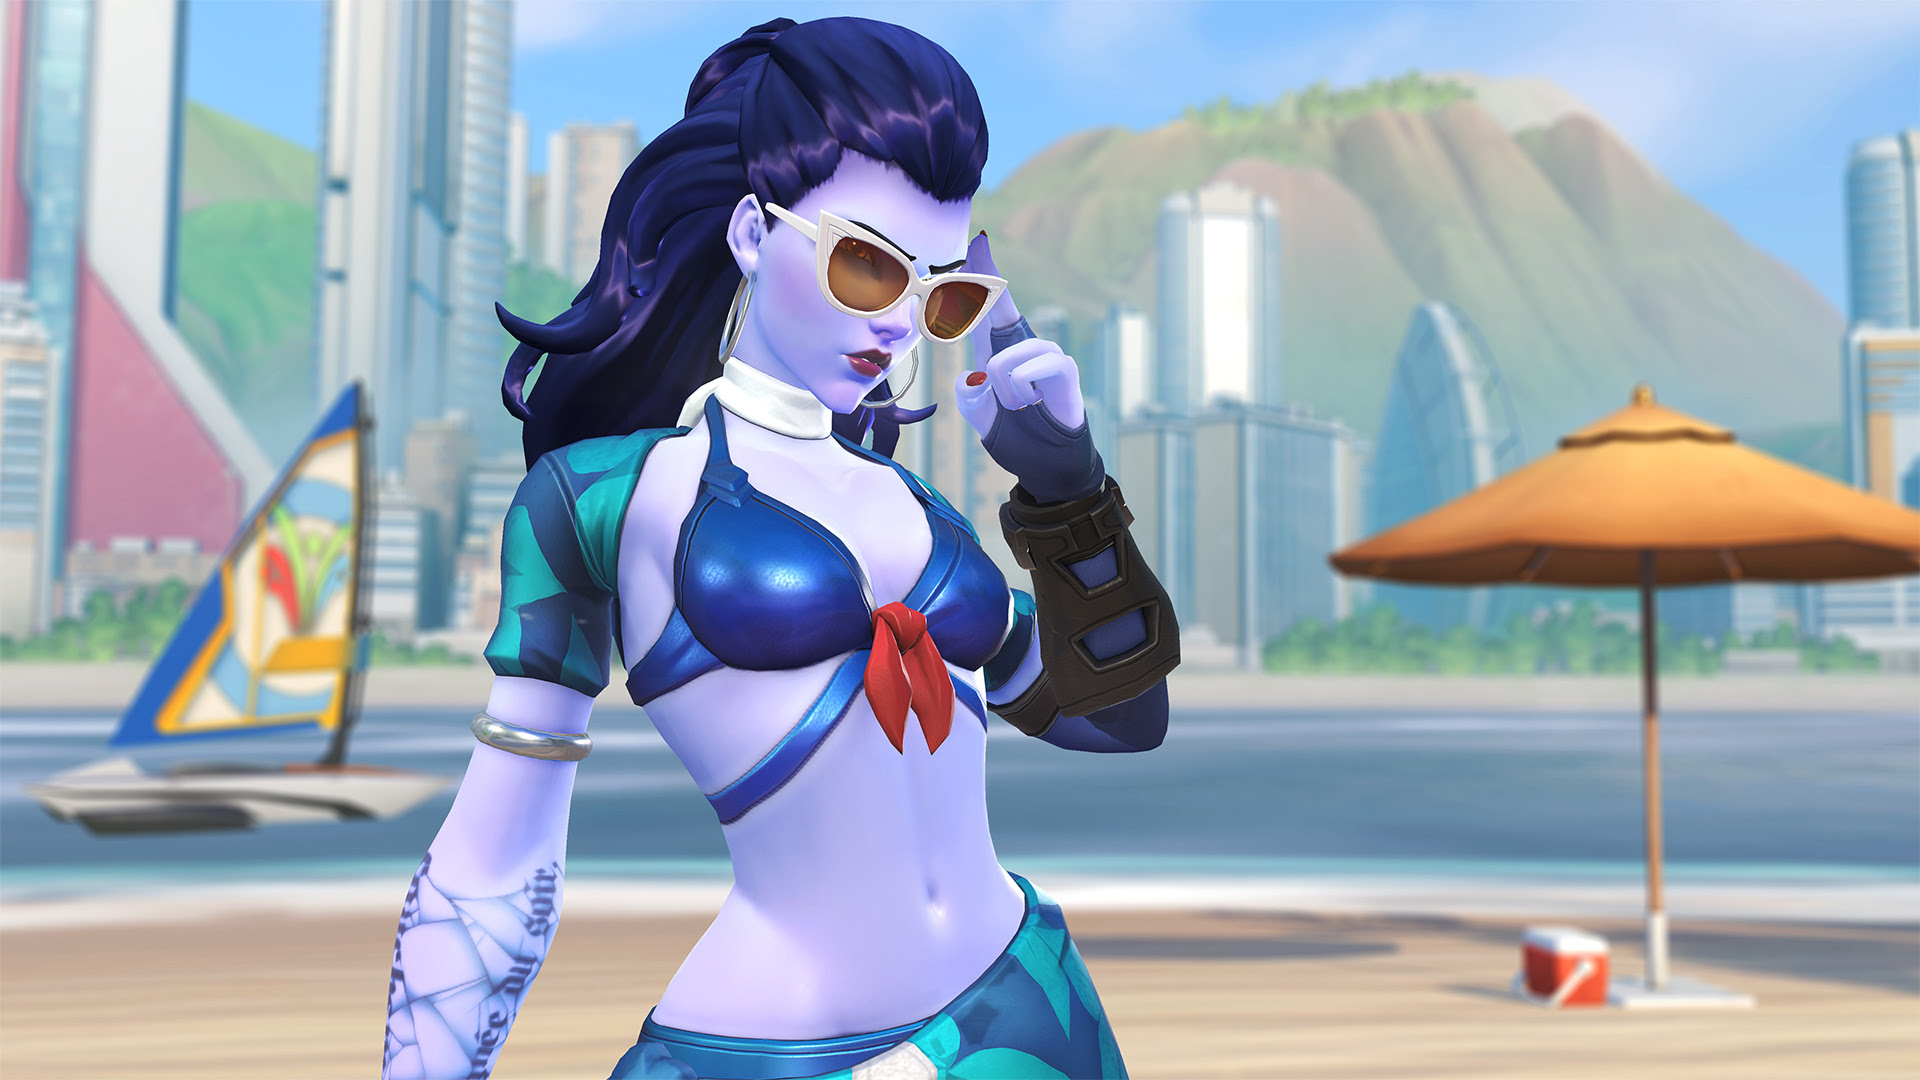 Overwatch just kicked off its Summer Games event screenshot